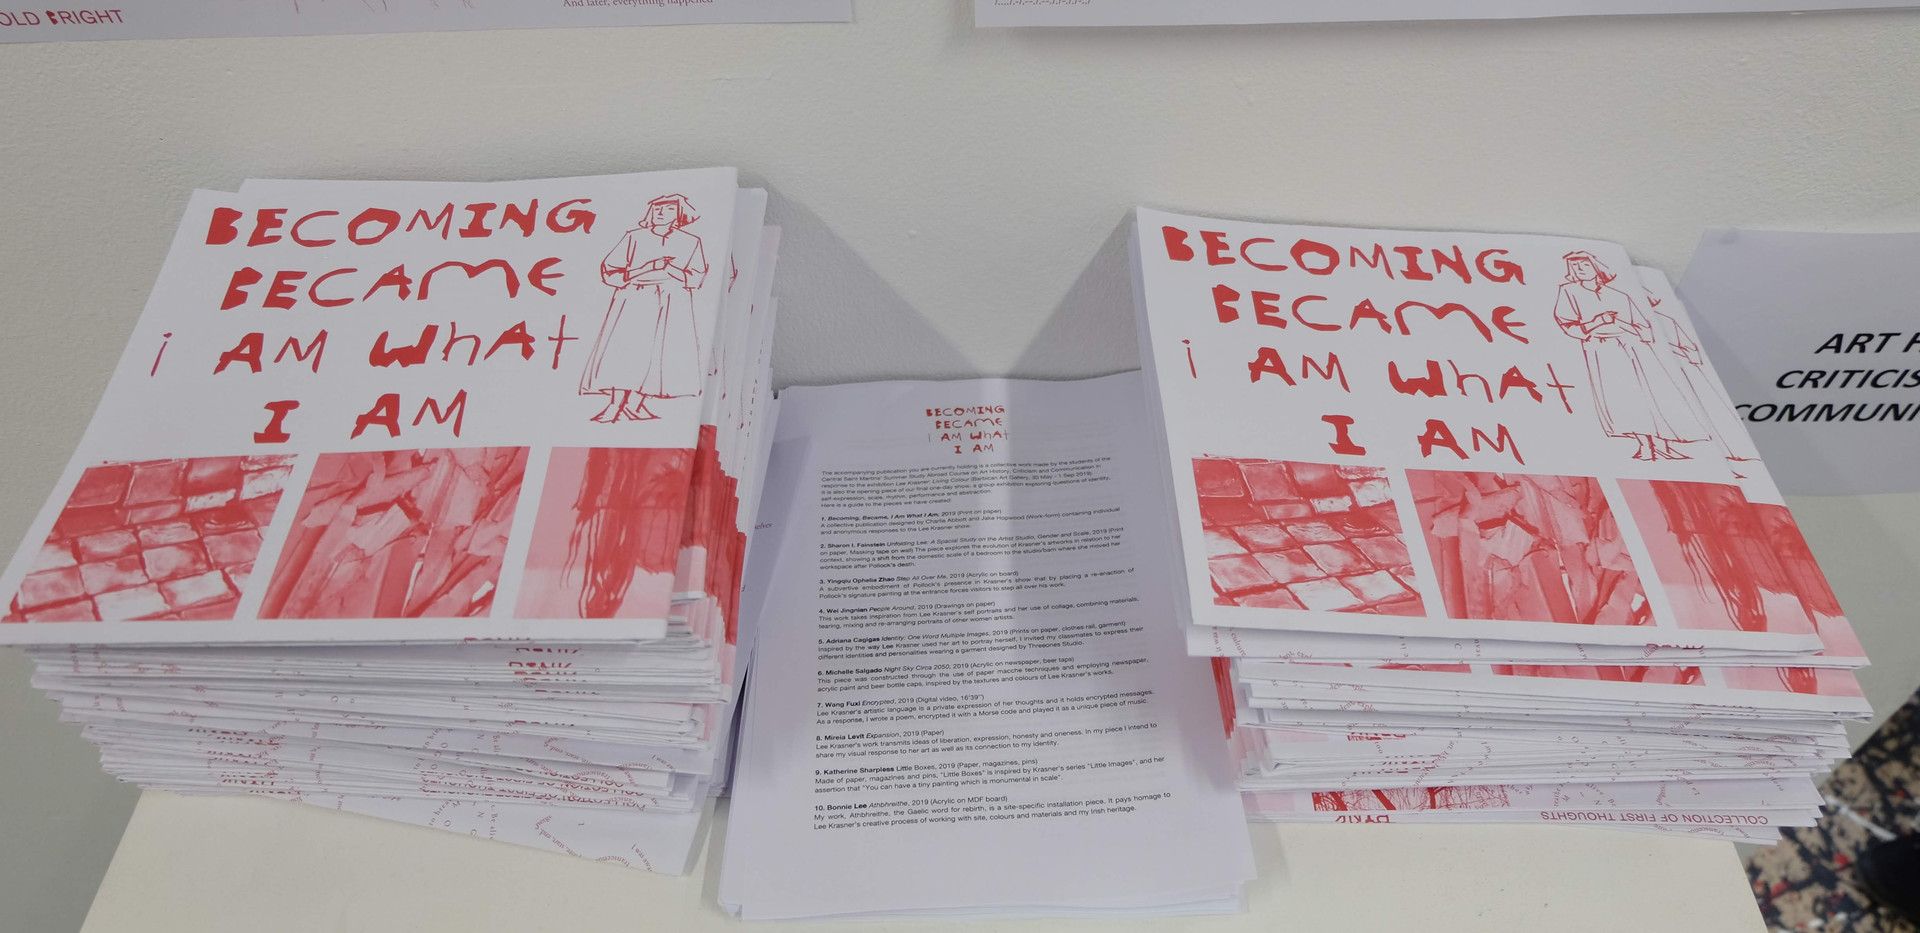 Publication and Exhibition Guide